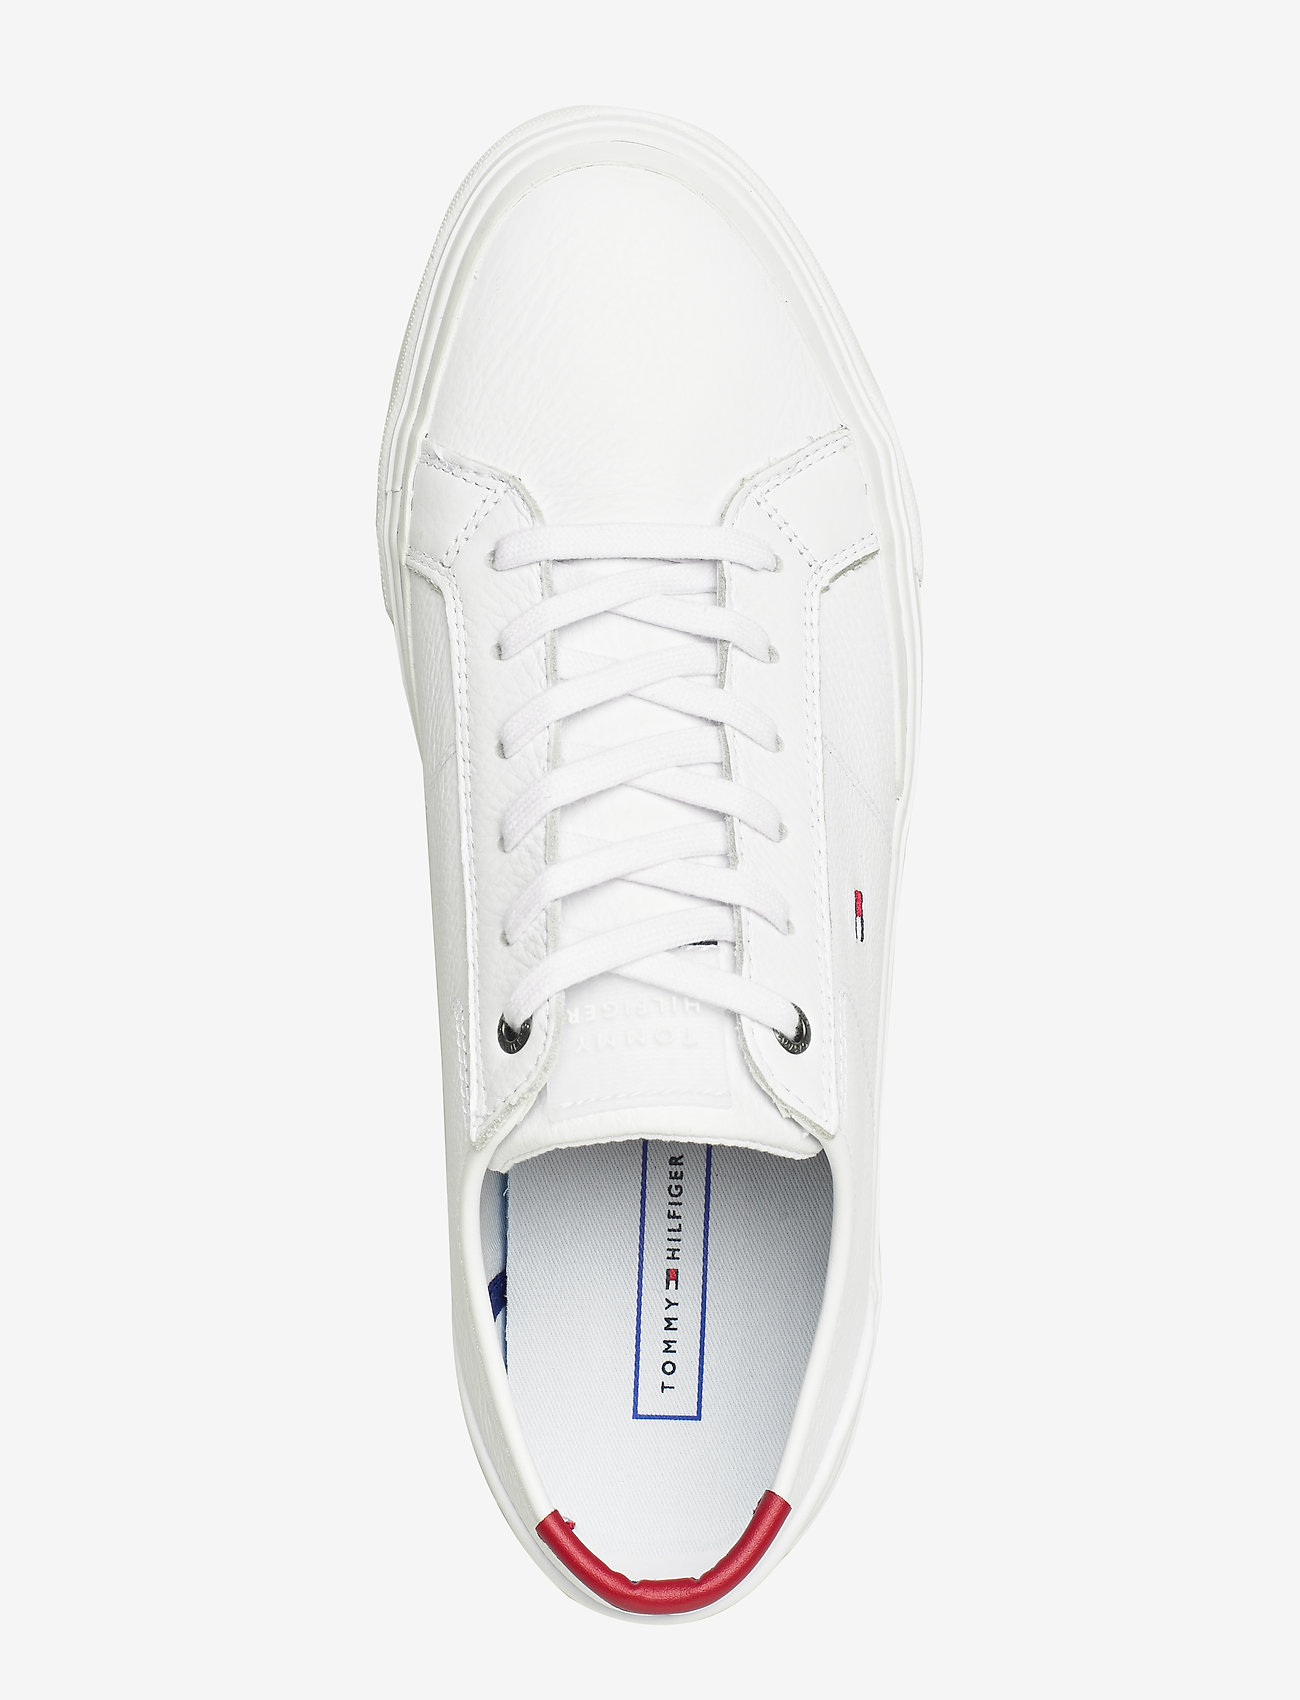 Core Corporate Flag Sneaker (White) - Tommy Hilfiger